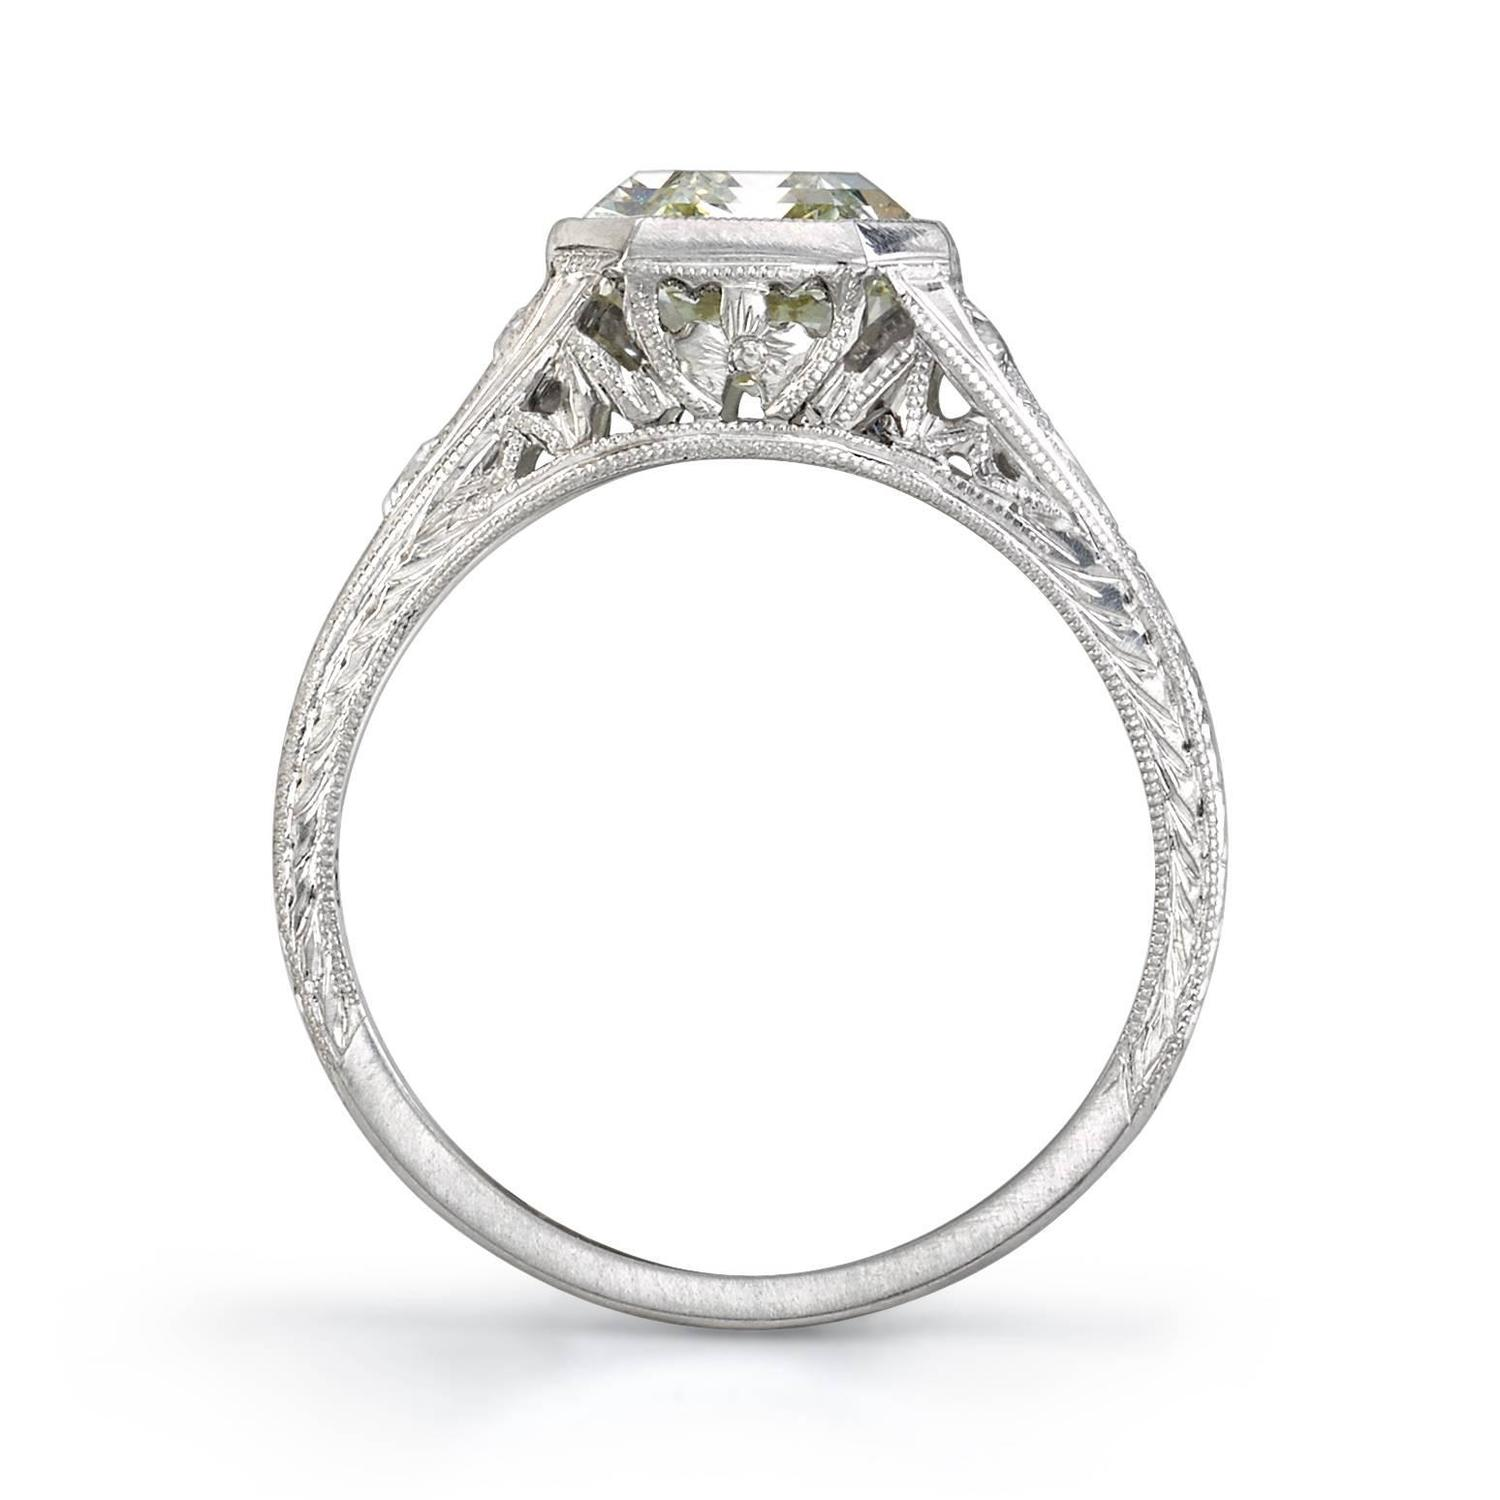 3 06 Carat Emerald Cut Diamond platinum Engagement Ring For Sale at 1stdibs